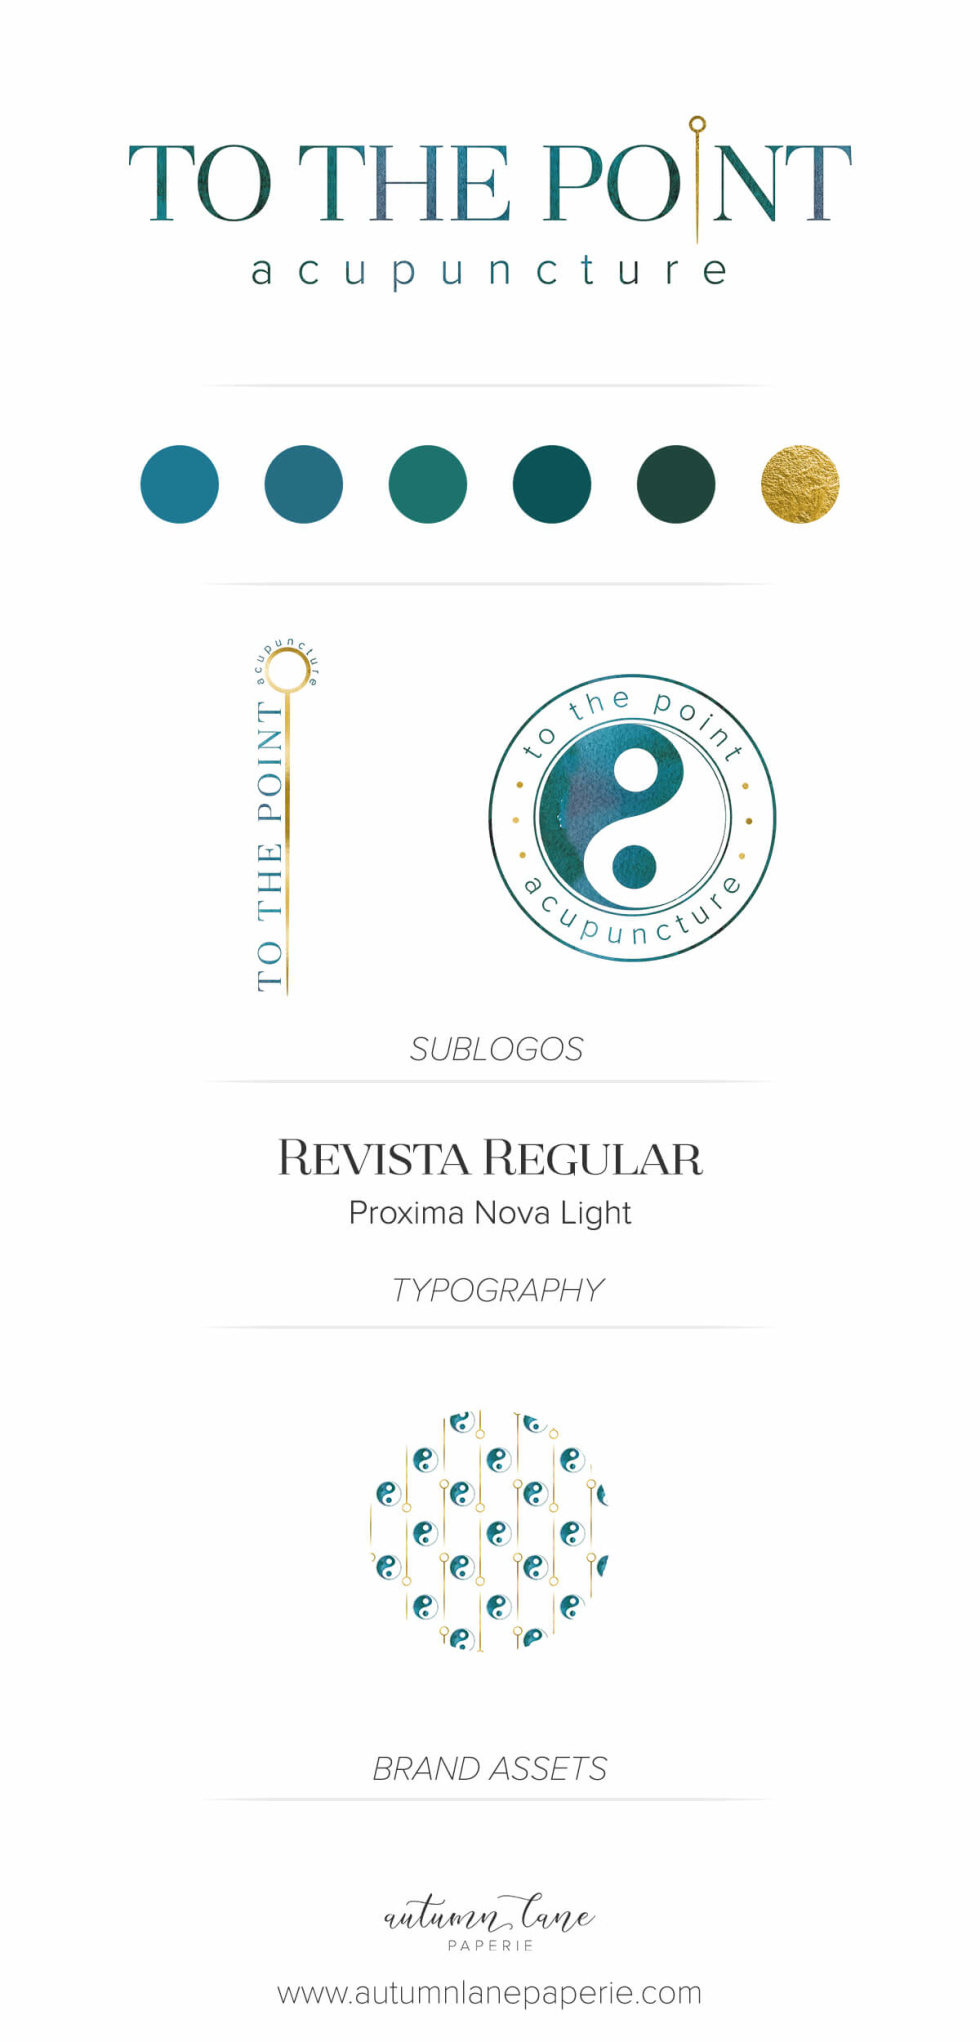 Branding examples featuring logo design, typography, color scheme examples, sublogos, and other brand assets.